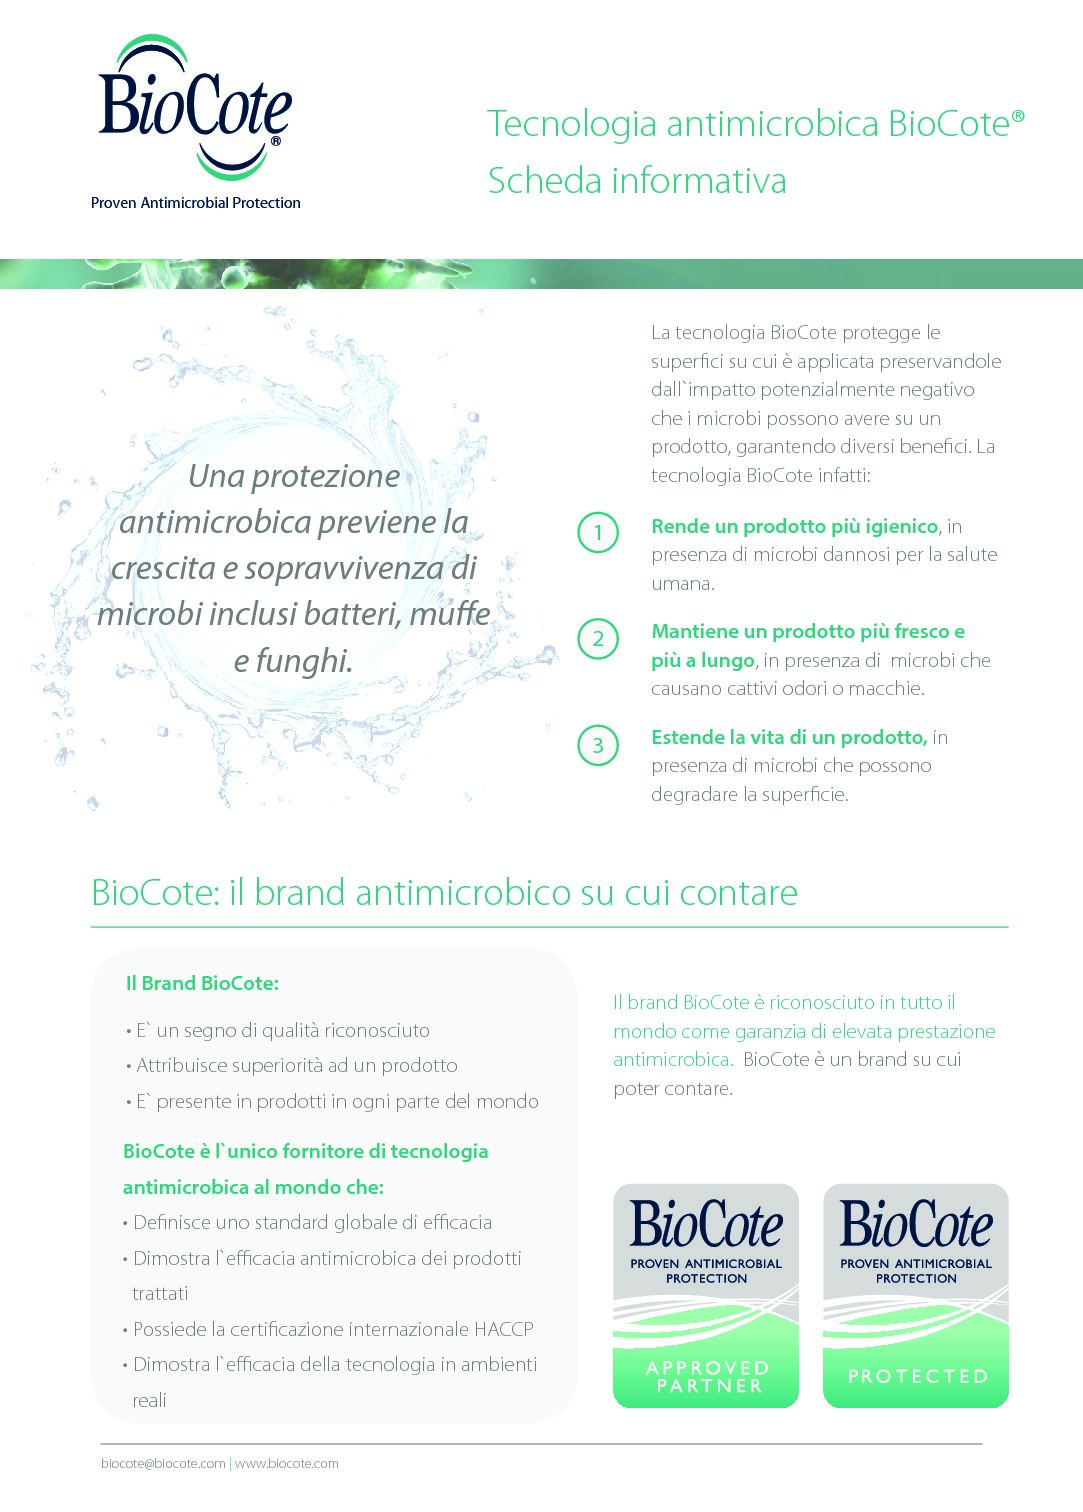 BioCote Fact Sheet (Italian)